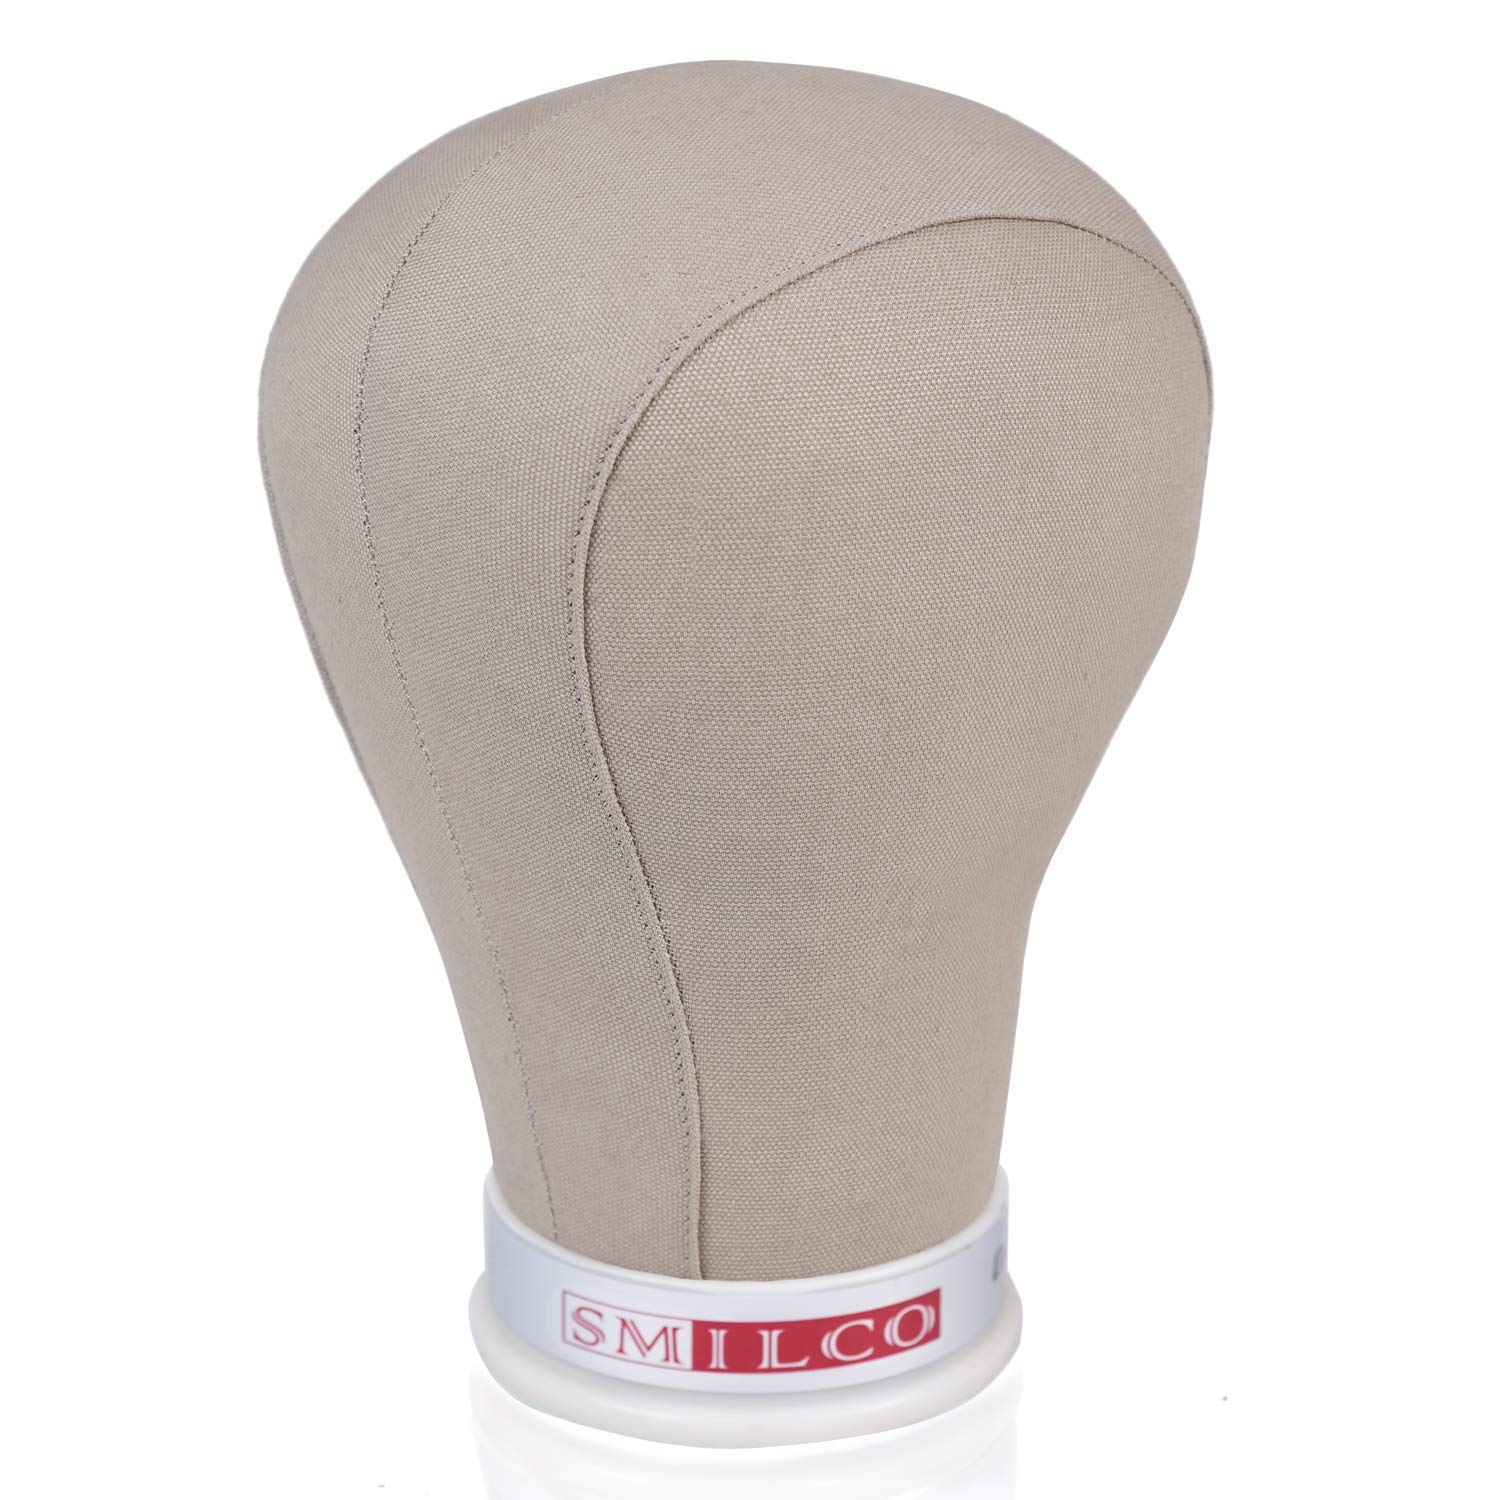 21 Inch Compatible Mannequin Head Stand,for Display and Wigs Making Smilco Wig Head Cork Canvas Block Manikin Head